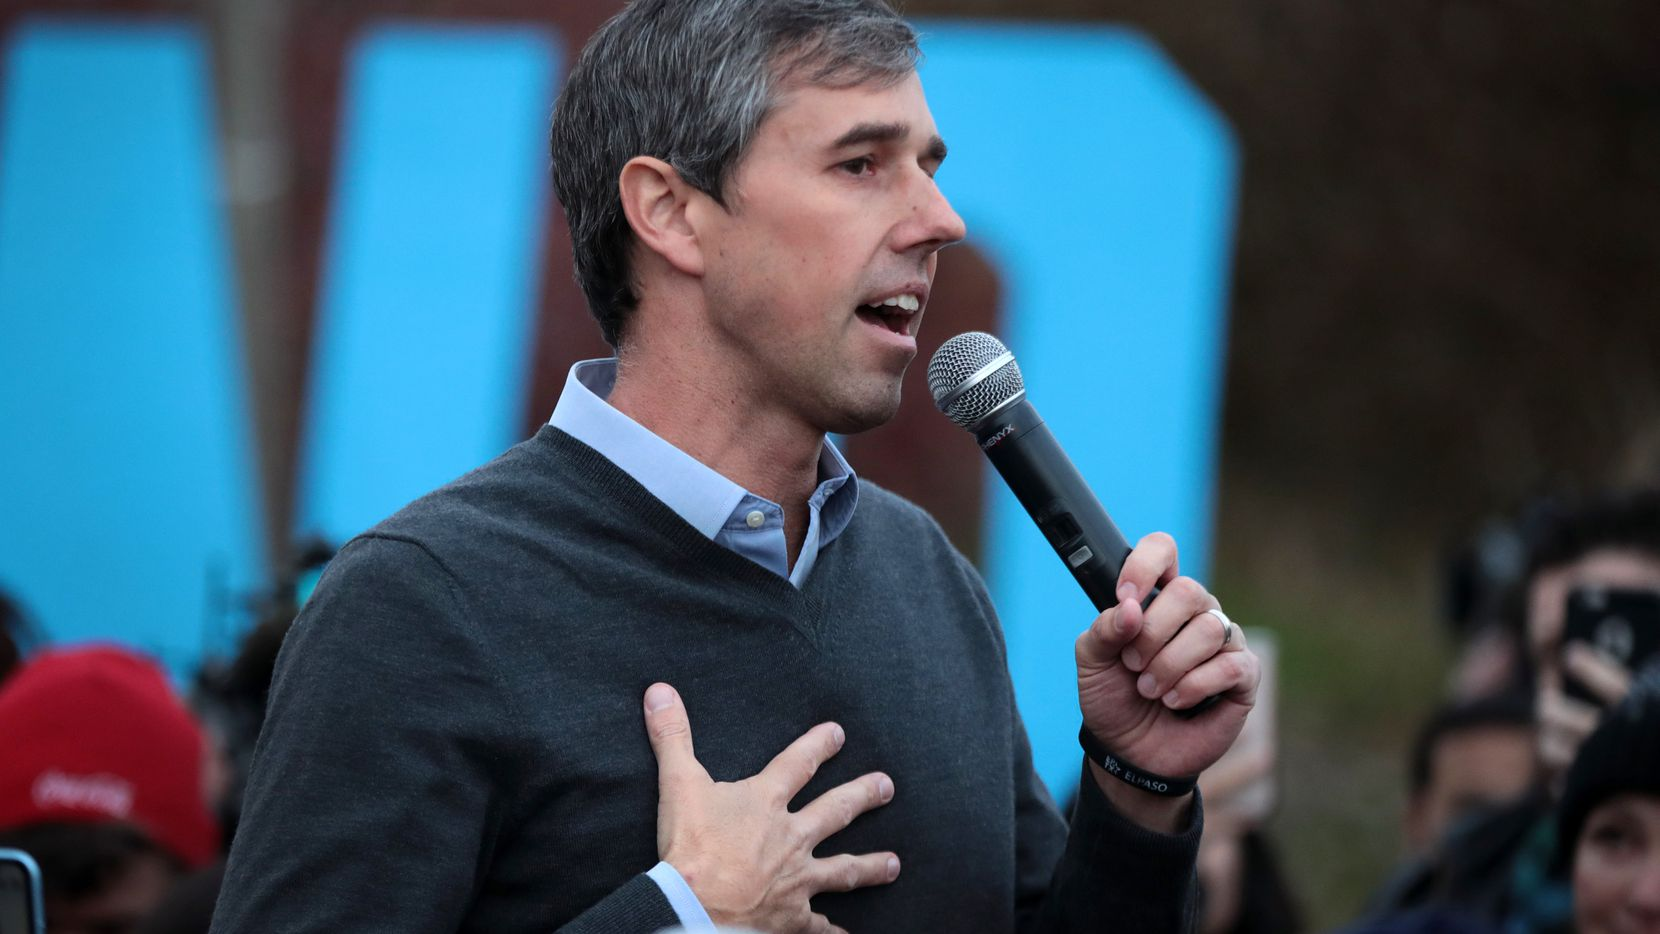 Former El Paso Rep. Beto O'Rourke will teach a class on Texas politics next semester at Texas State University.